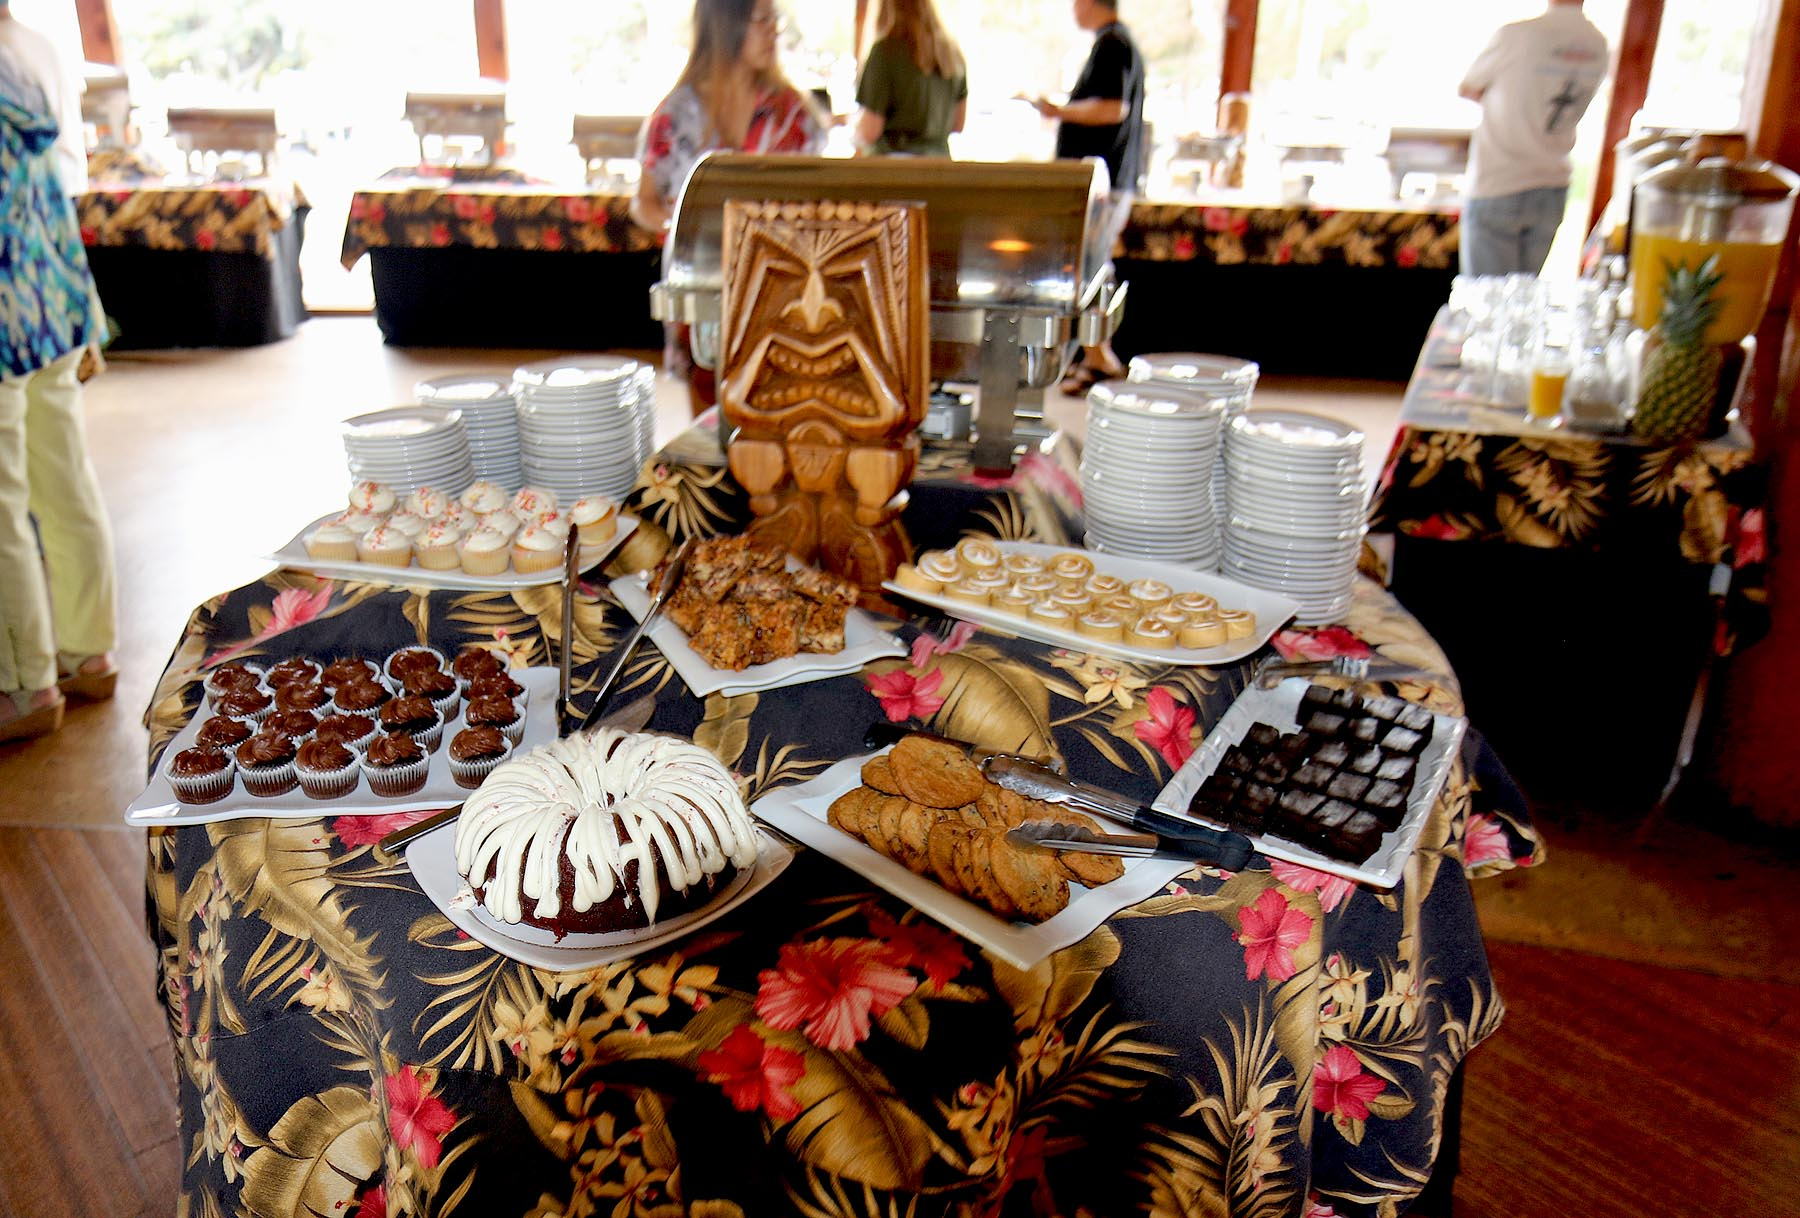 The Dessert Table at Brunch - Yum!